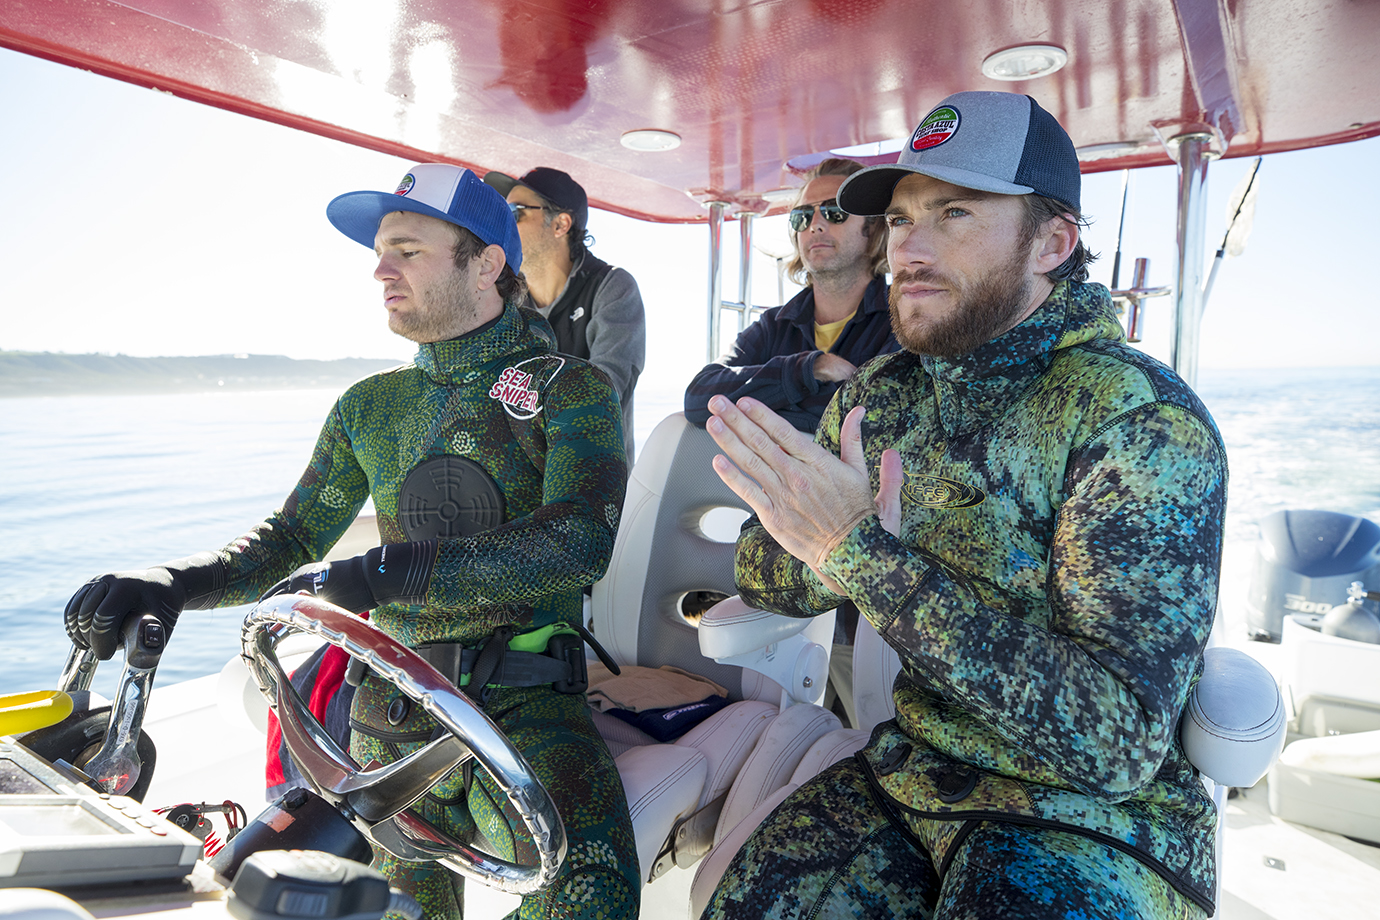 Scott Eastwood and his friends looking for a spearfishing spot.